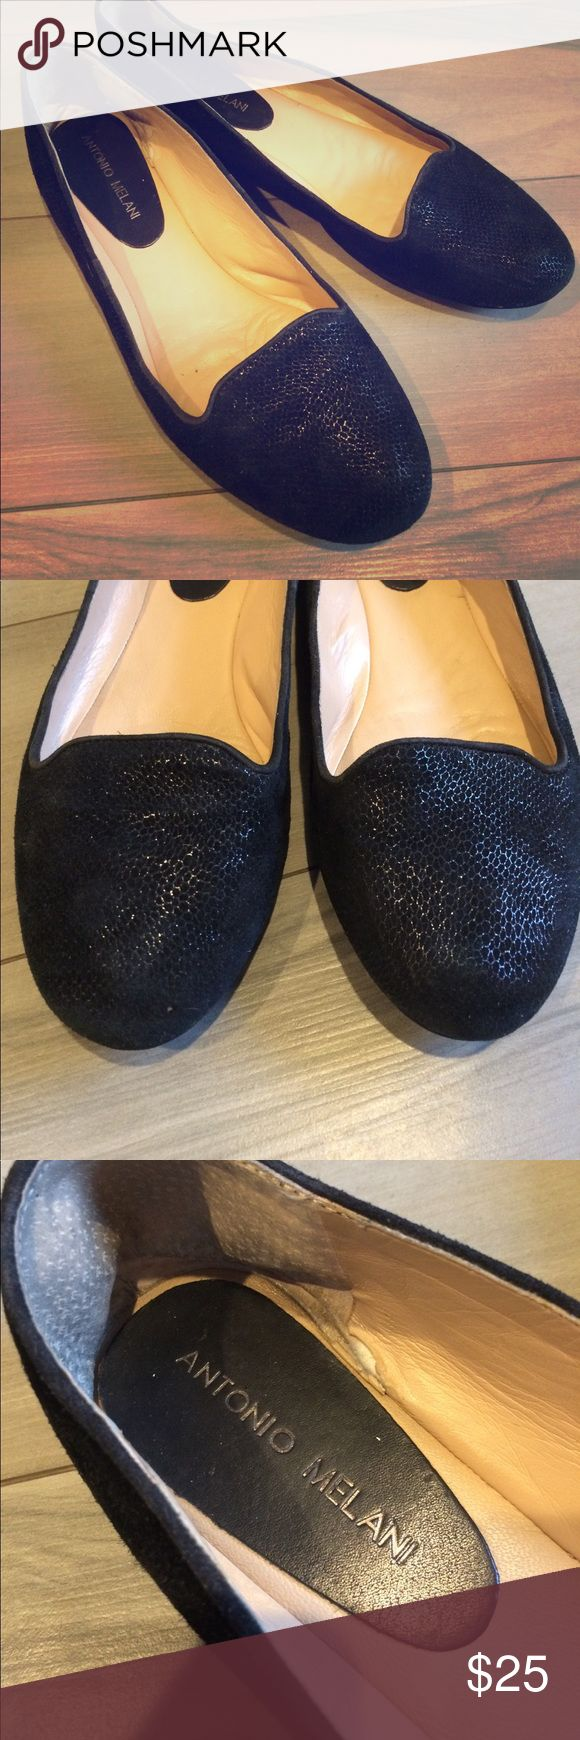 Antonio Melani black leather flats 9.5 Subtle snakeskin suede with a little shimmer. In good condition with lots of life left. The outside looks almost brand new, the inside has a small tear in the right shoe. ANTONIO MELANI Shoes Flats & Loafers